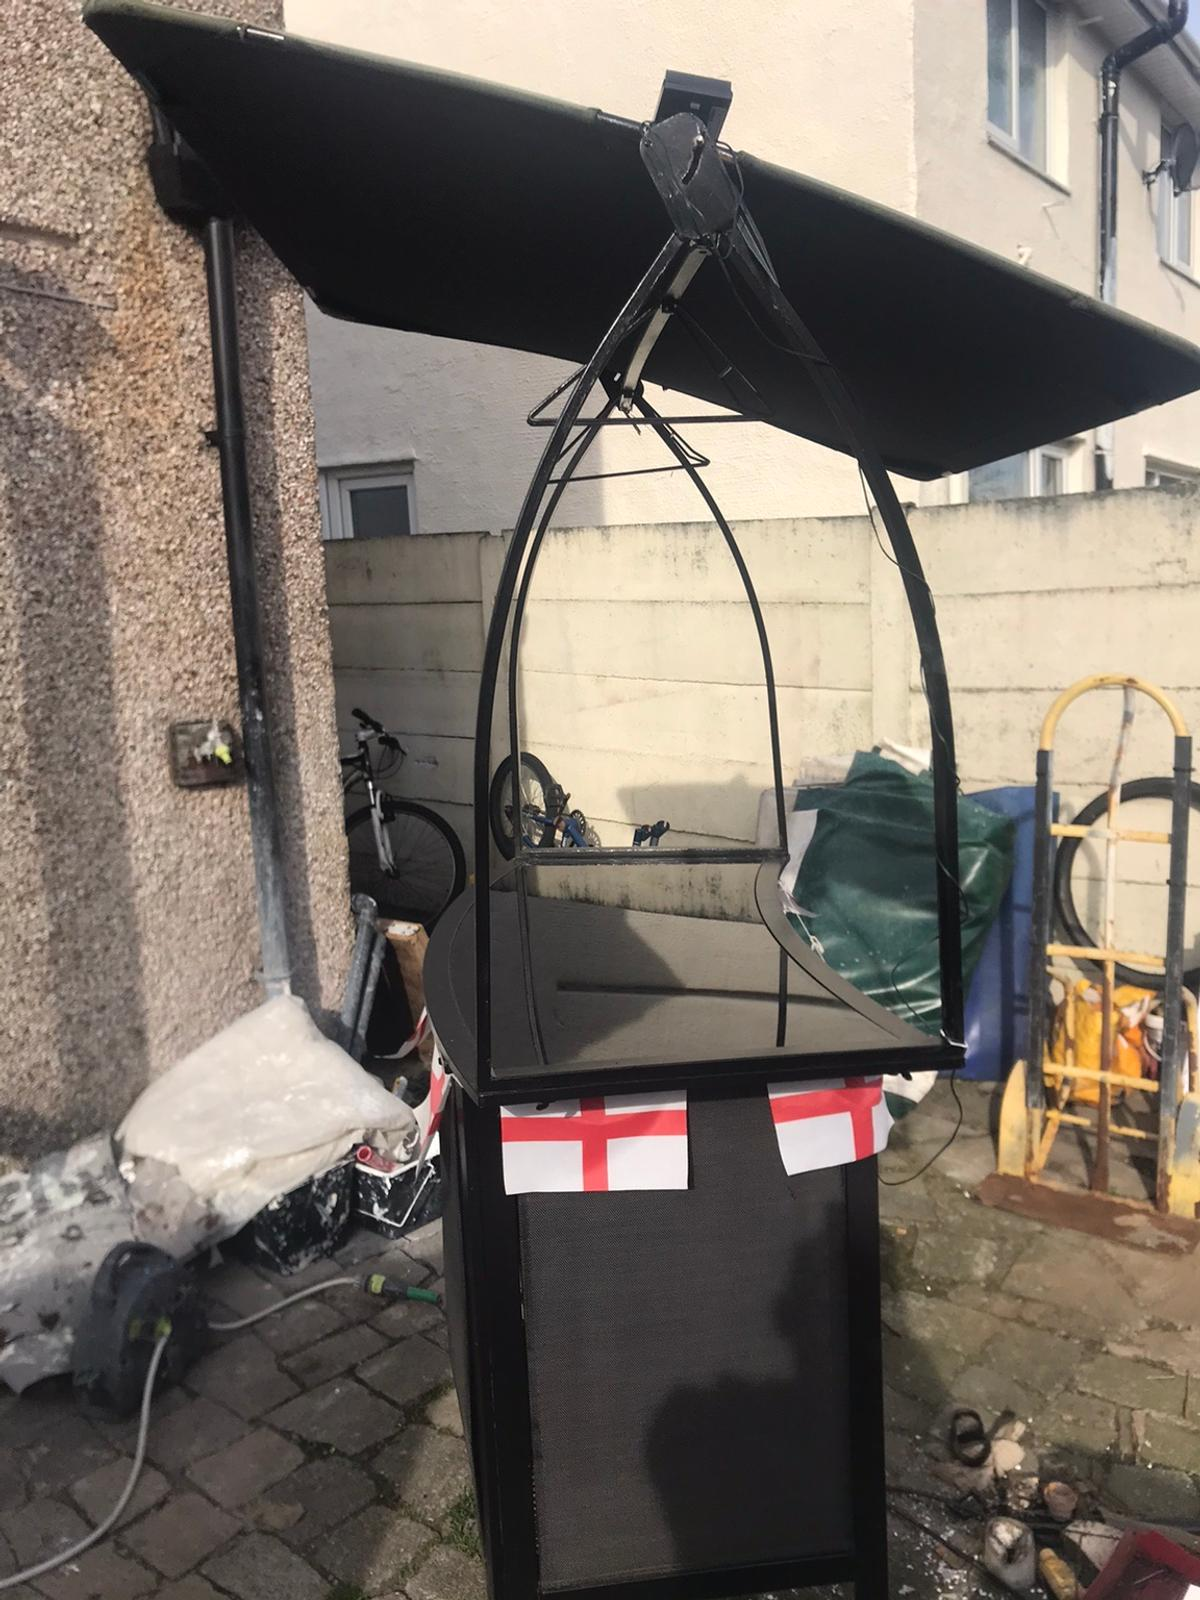 In v good condition Delivery is available for a van fee St. Helens area